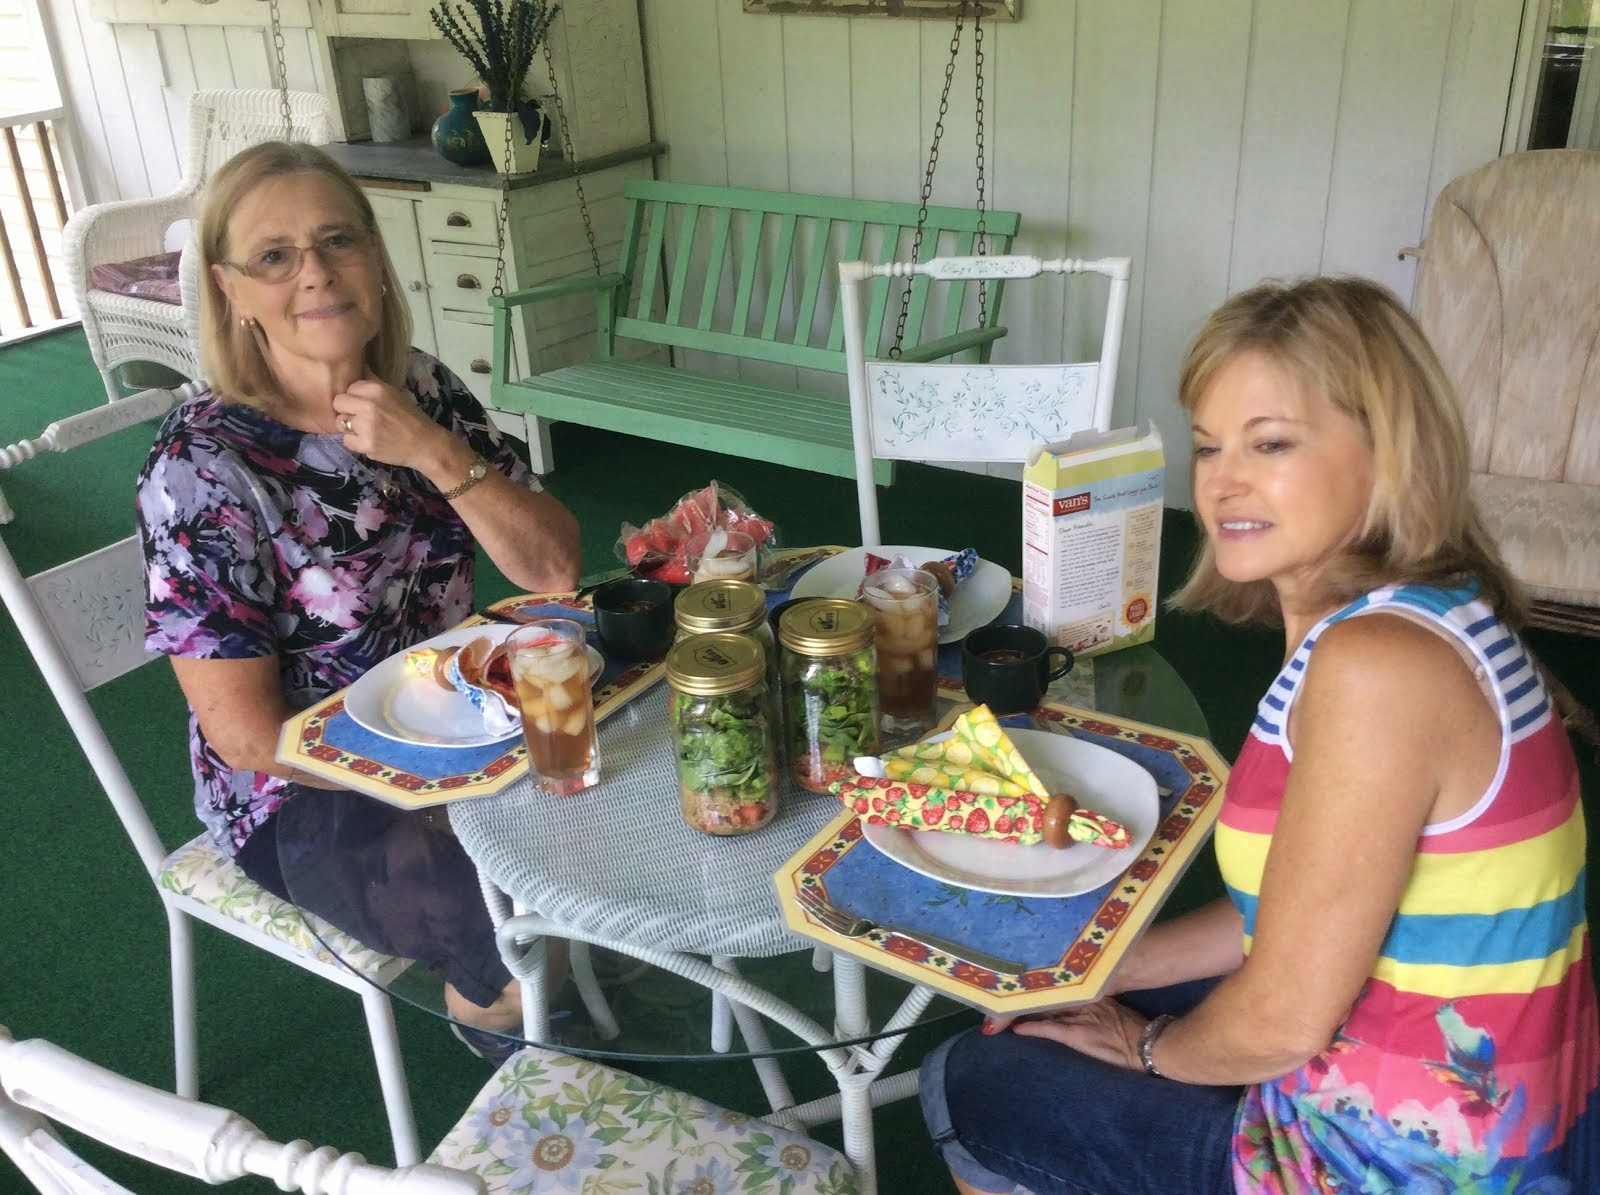 Lunch at Cheryl's with Cindy